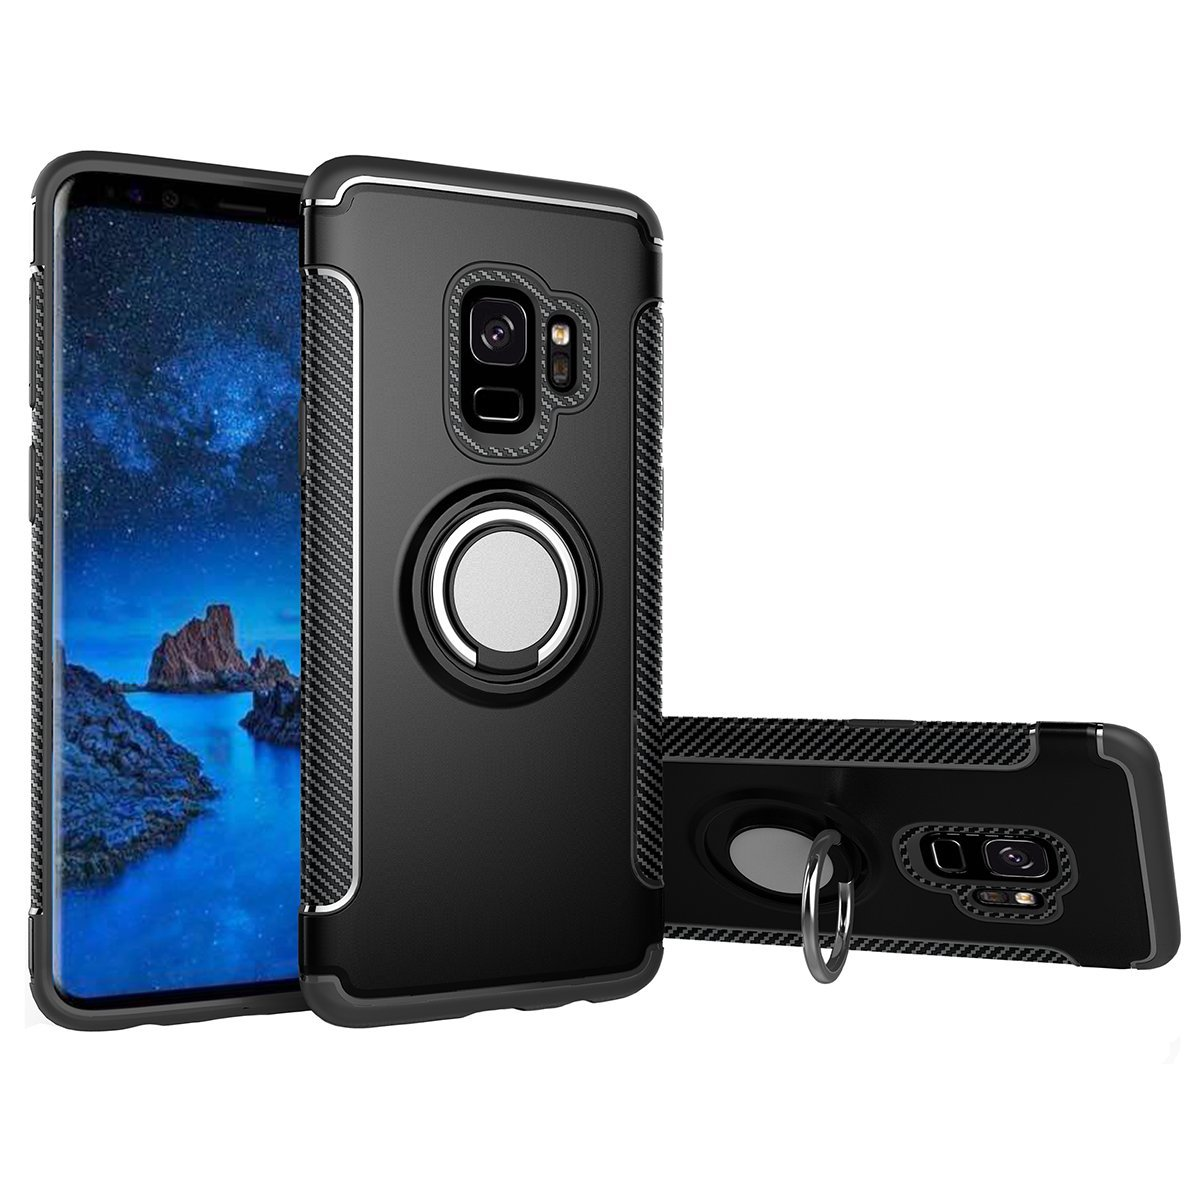 Mignova Galaxy S9 Plus Case, Two-layer Reinforced Back Cover Protect Case with Ring Holder for Samsung Galaxy S9 Plus(Black)